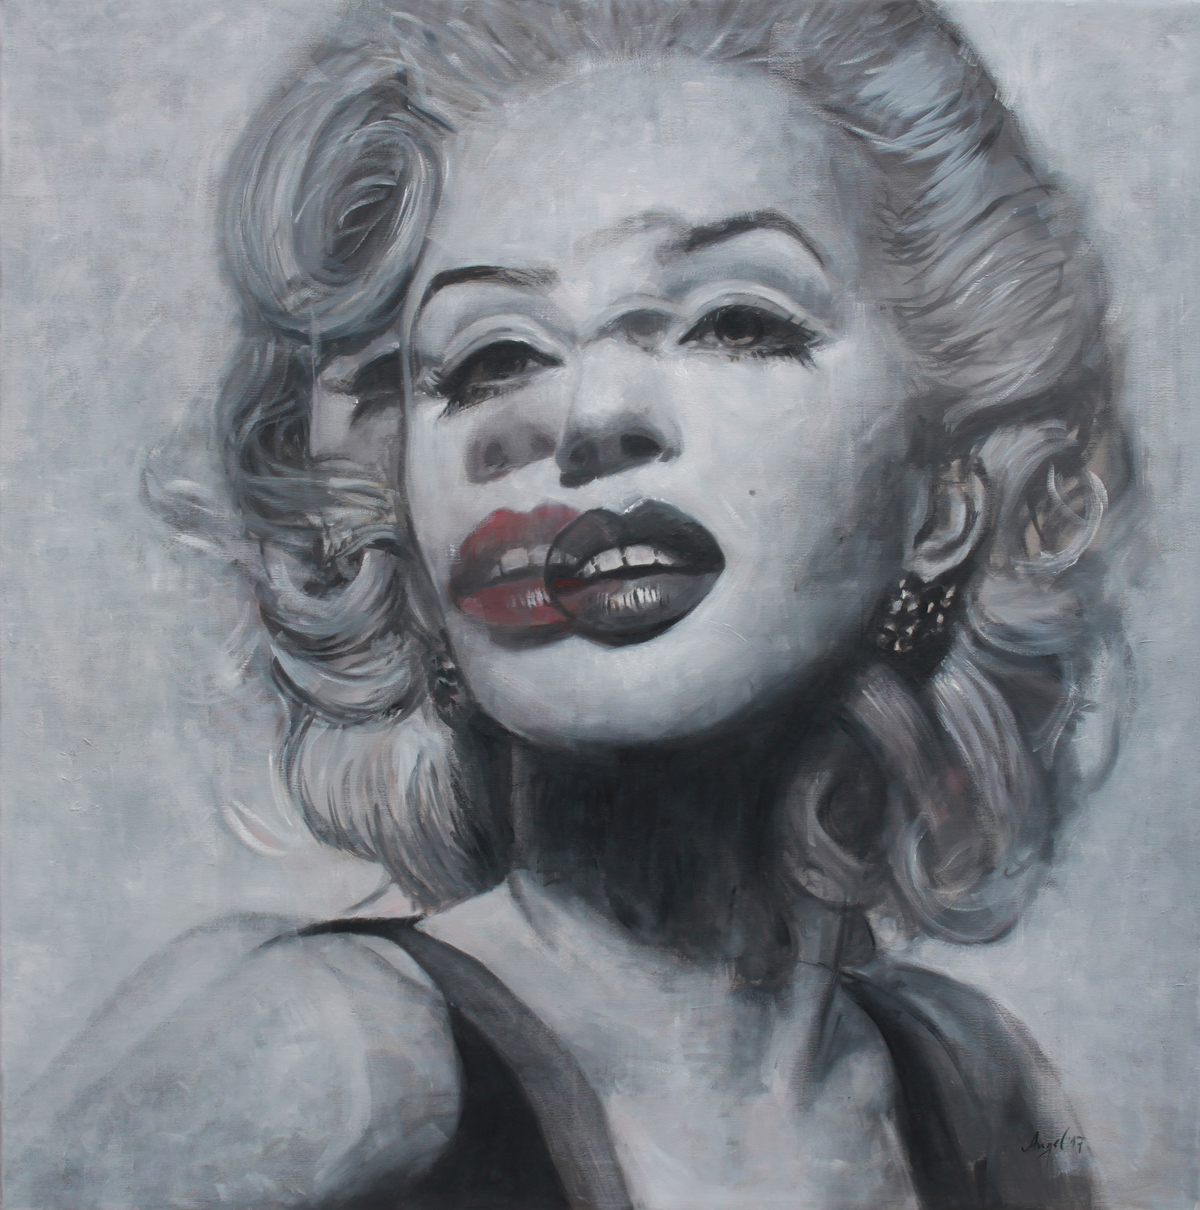 Angel Peychinov, Marilyn, 2017, oil on canvas, 100x100cm, presented by Galerie Barbara von Stechow